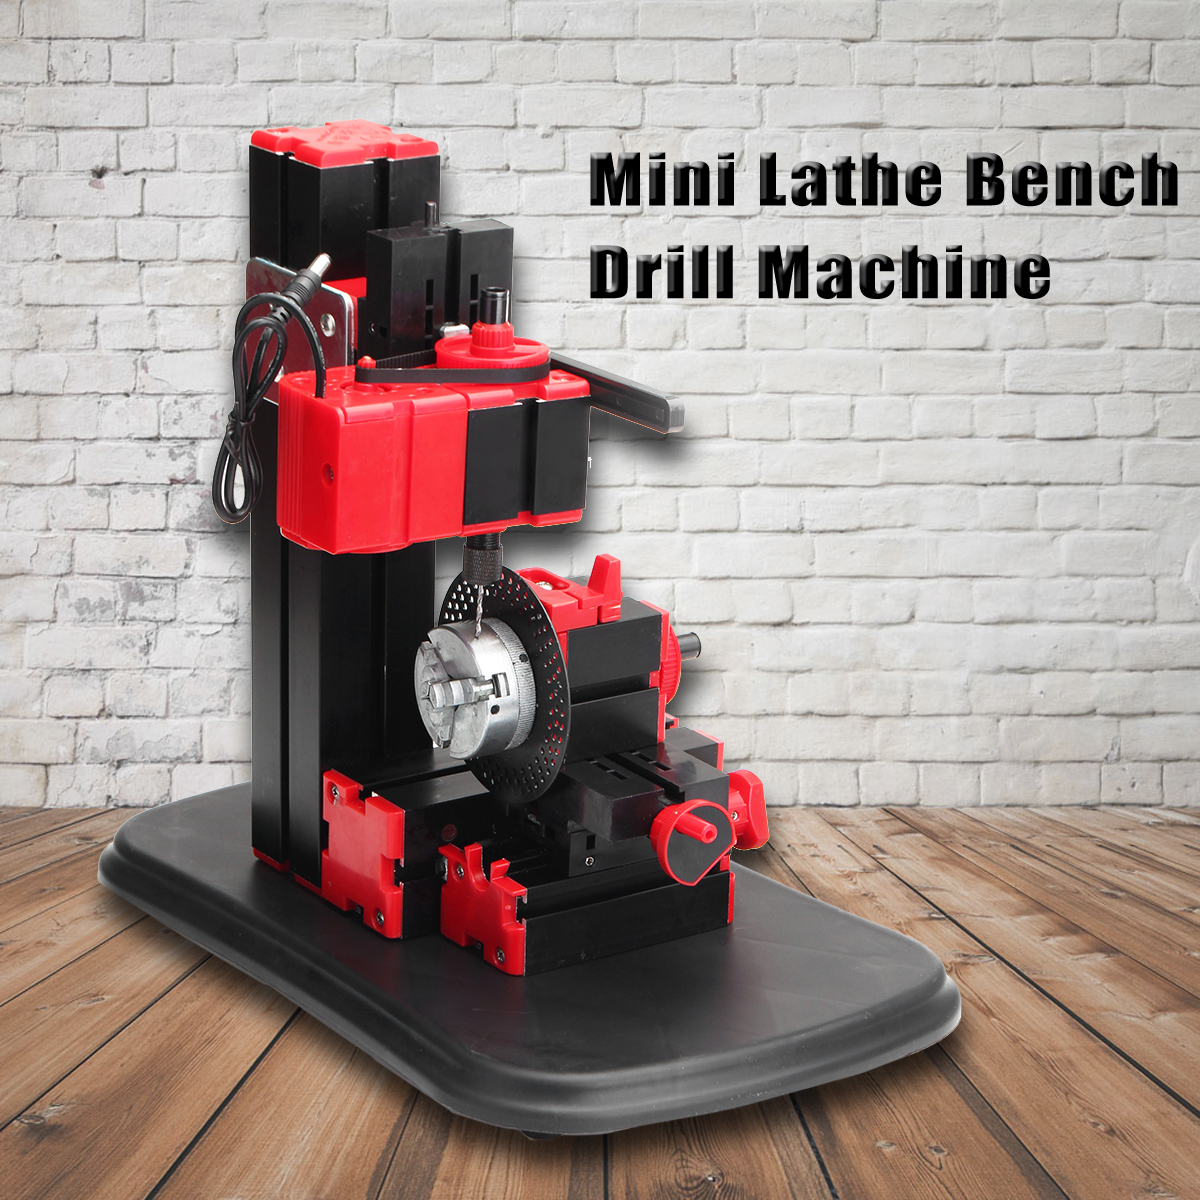 Mini Lathe Bench Drill Machine DIY Electric Drill Woodwork Model Making Tool Lathe Milling Machine Kit 110V-240V 1pcs multifunctional mini bench lathe machine electric grinder polisher drill saw tool 350w 10000 r min